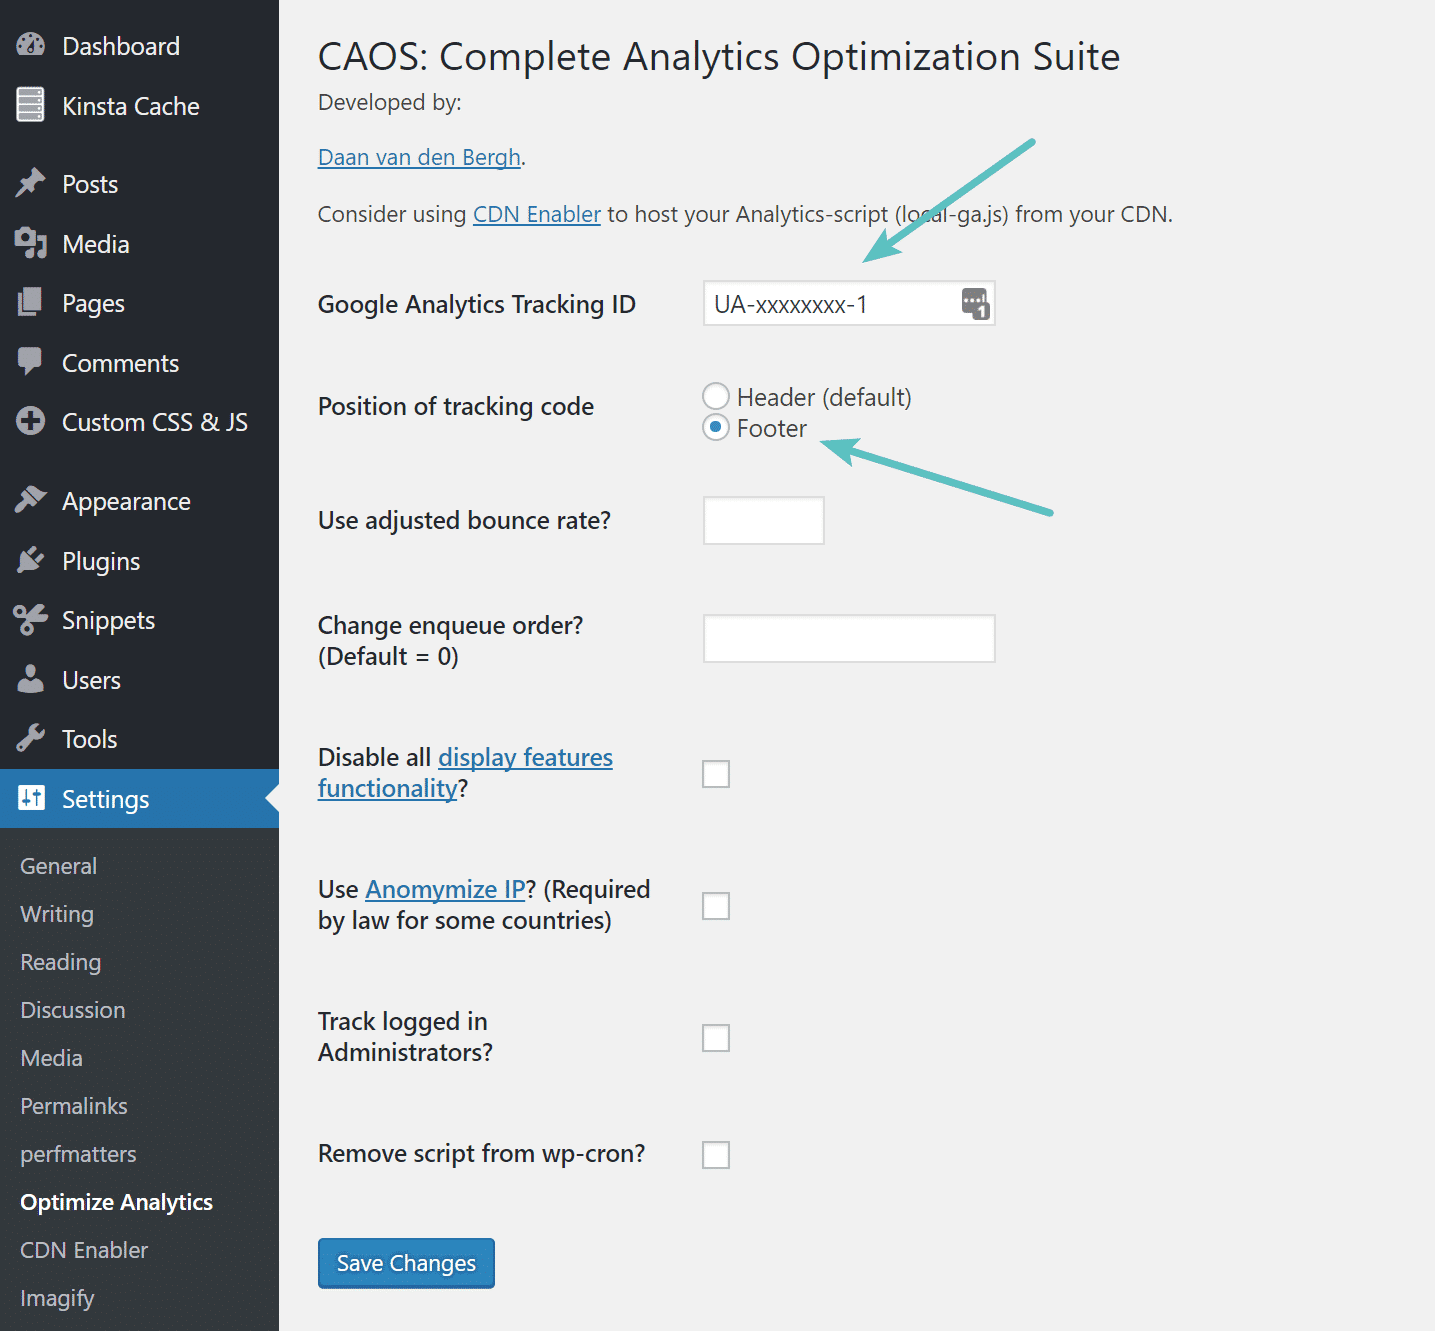 Settings to sync Google Analytics locally